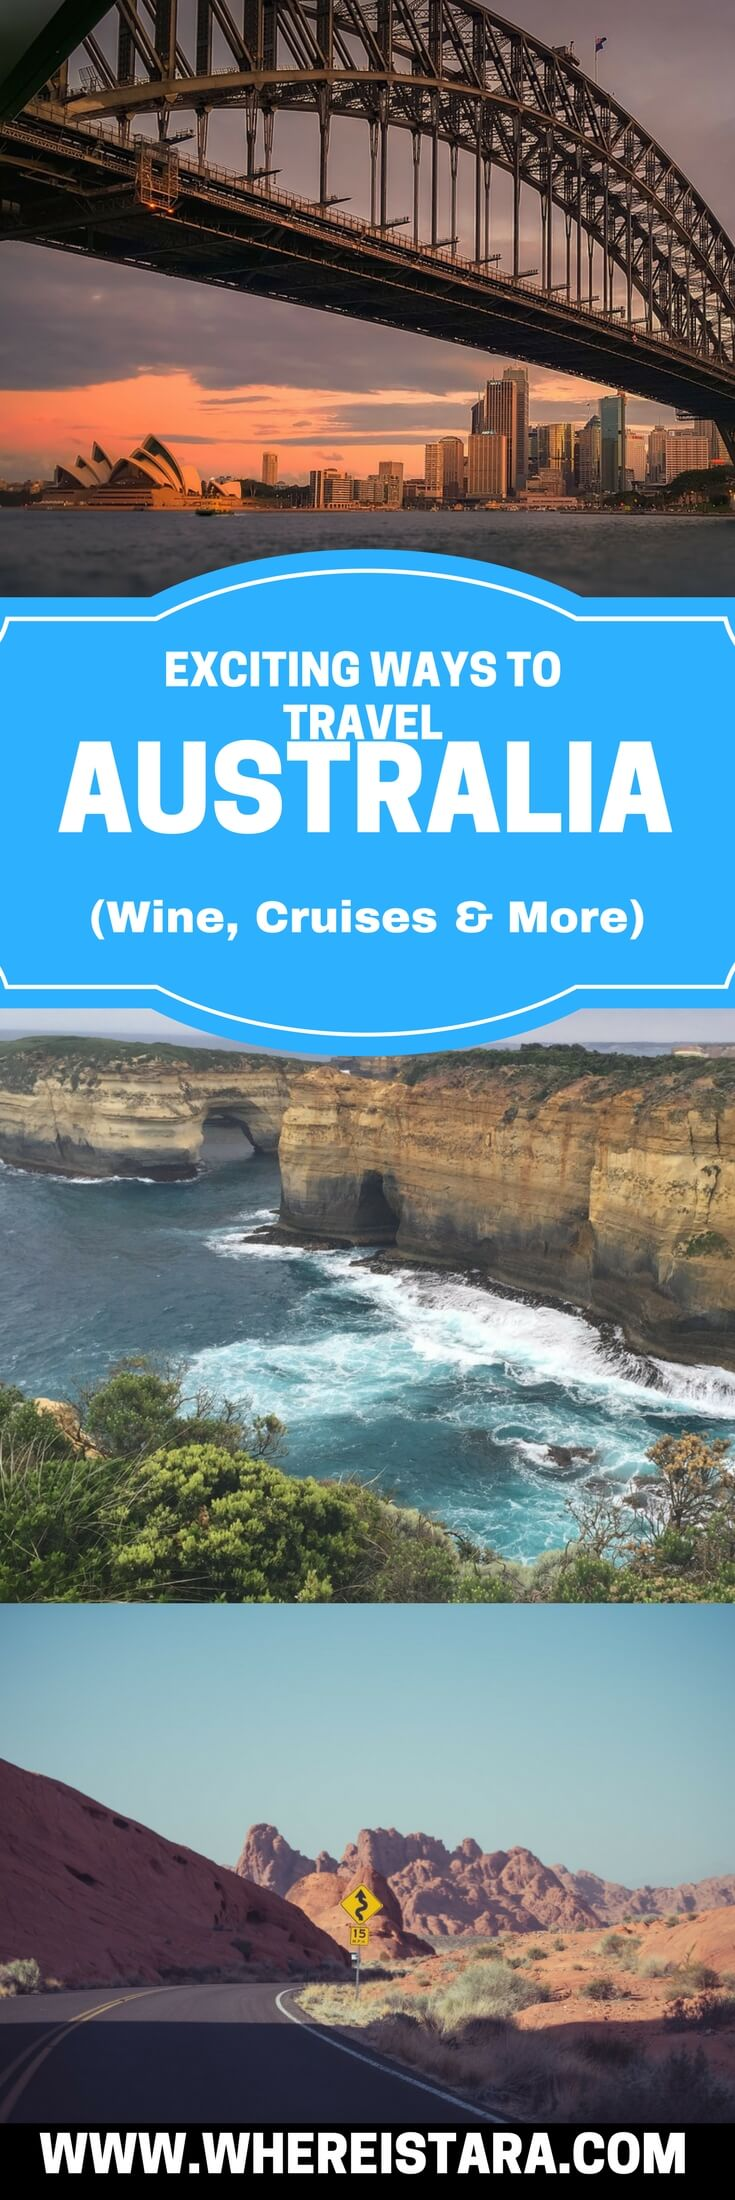 ways to travel australia where is tara top irish travel blogger